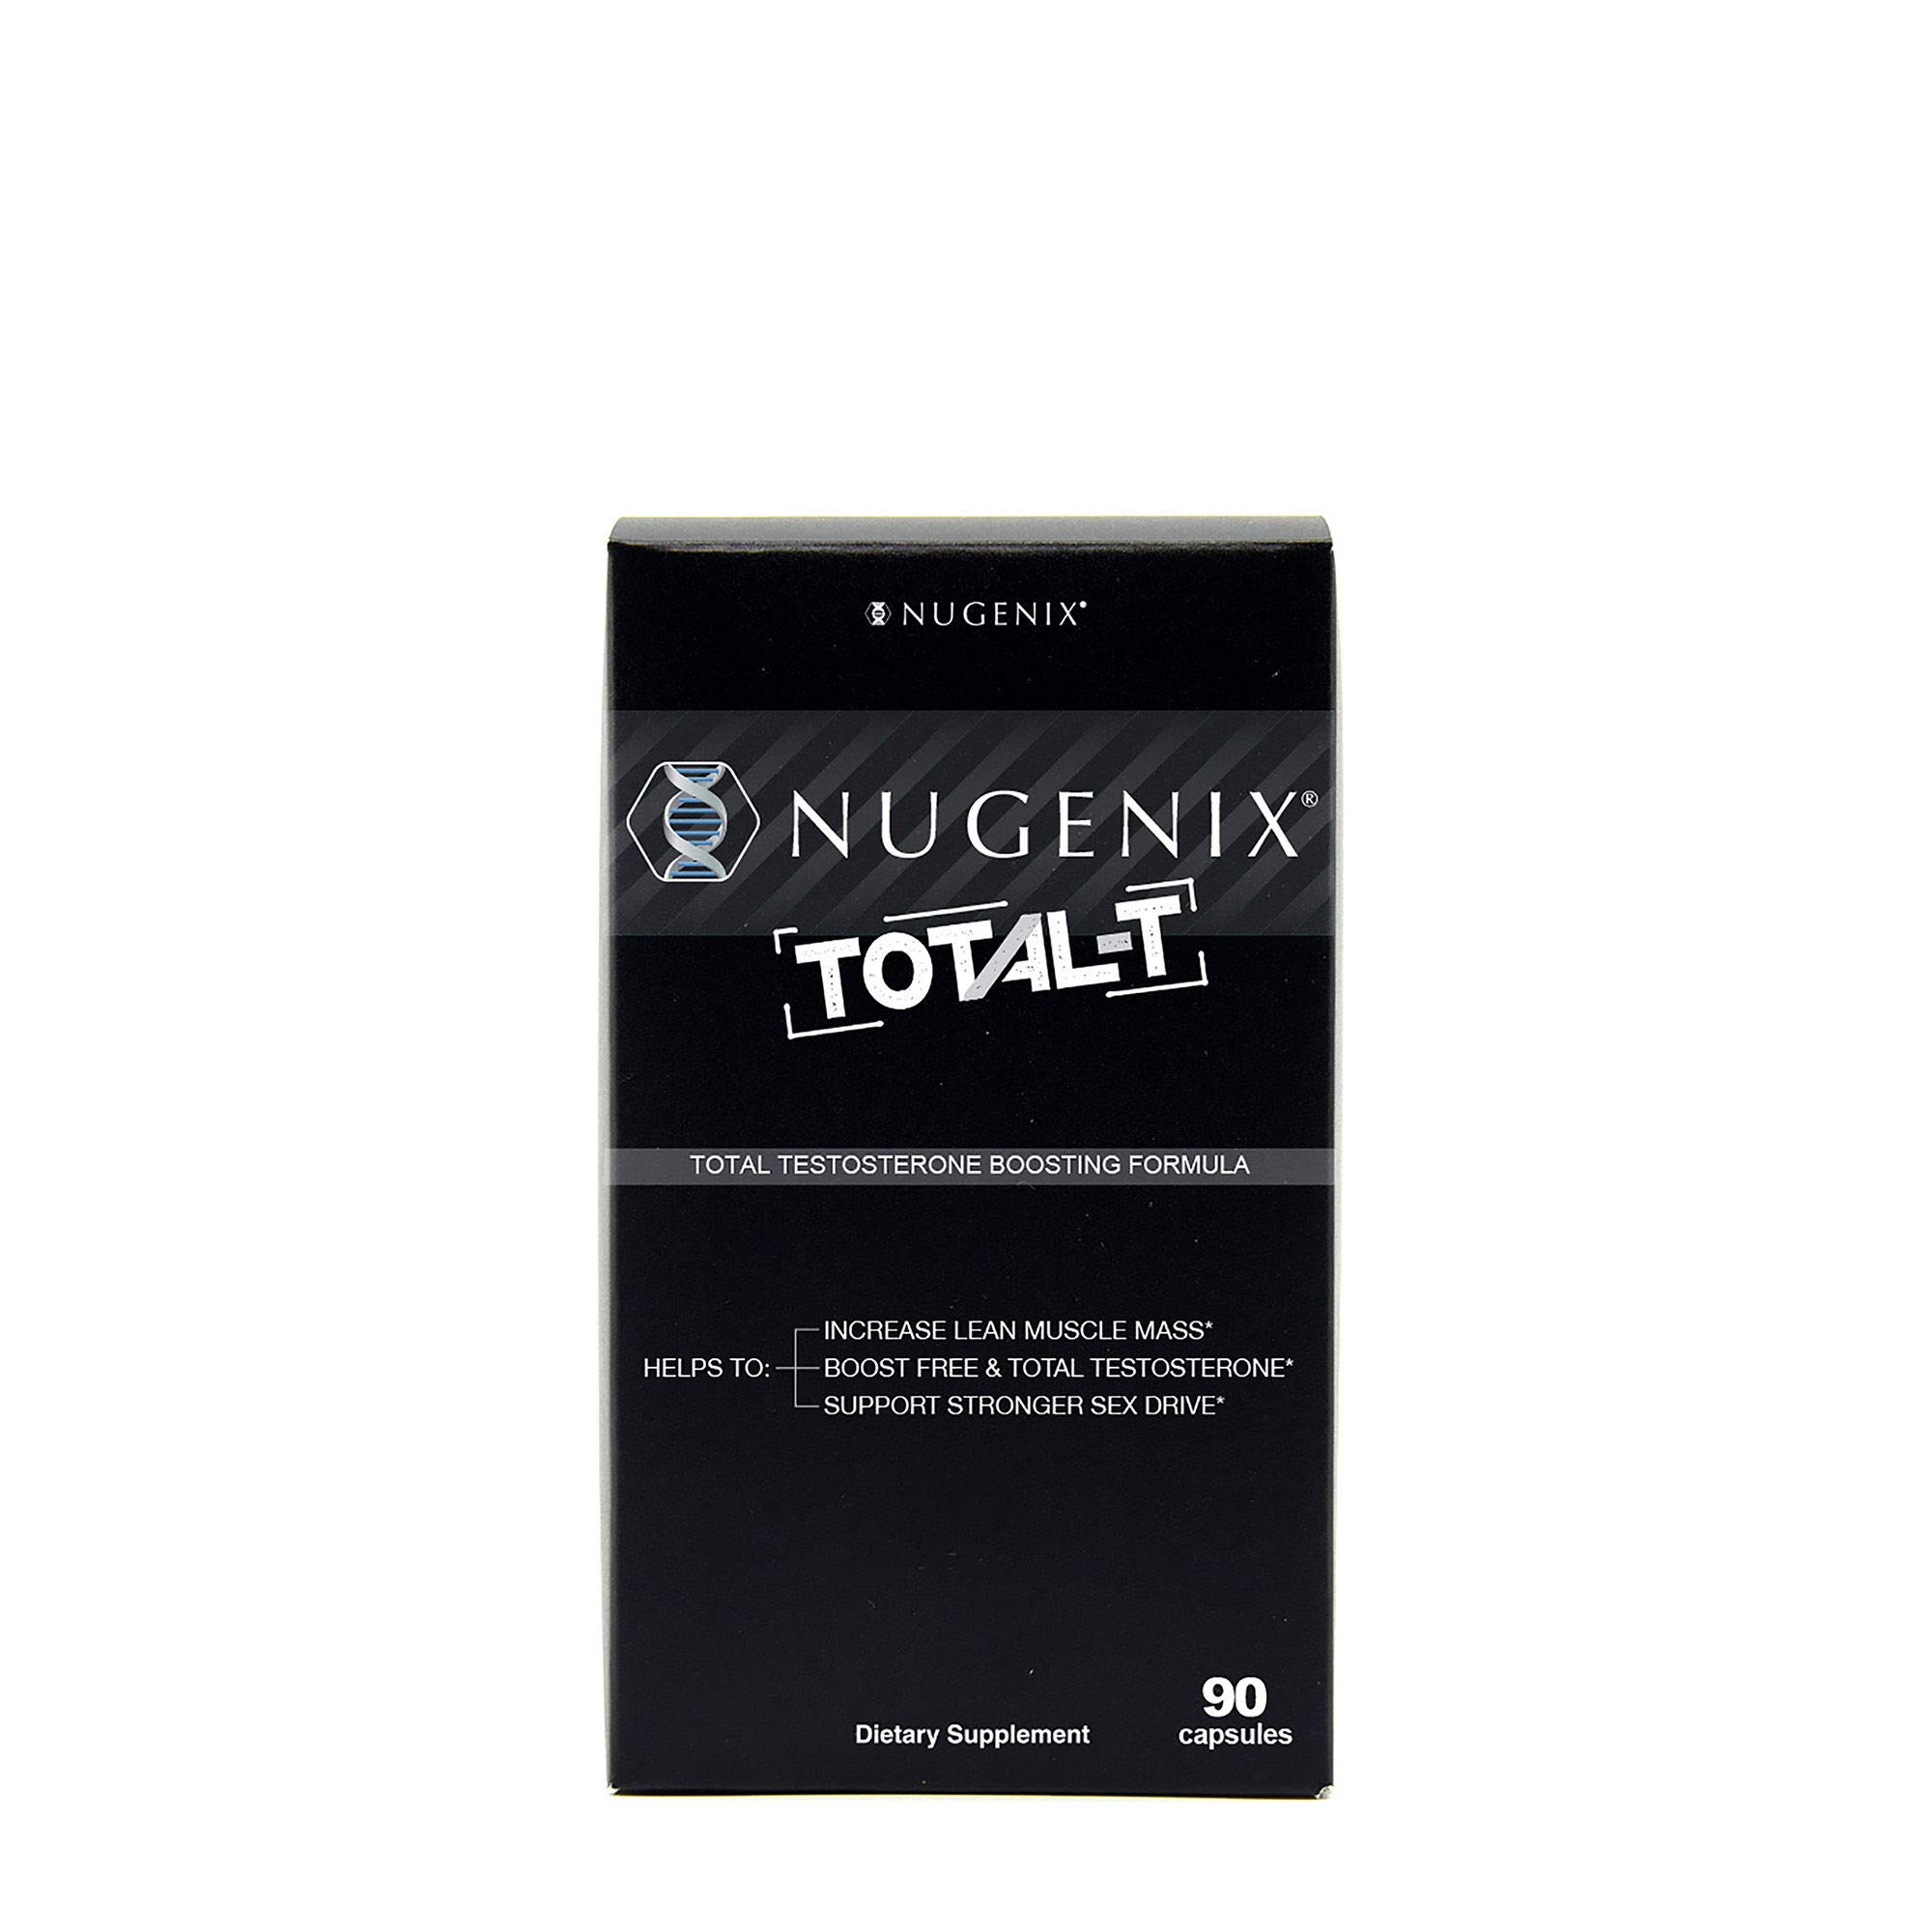 Nugenix Total-T - Twin Pack by Nugenix (Image #3)